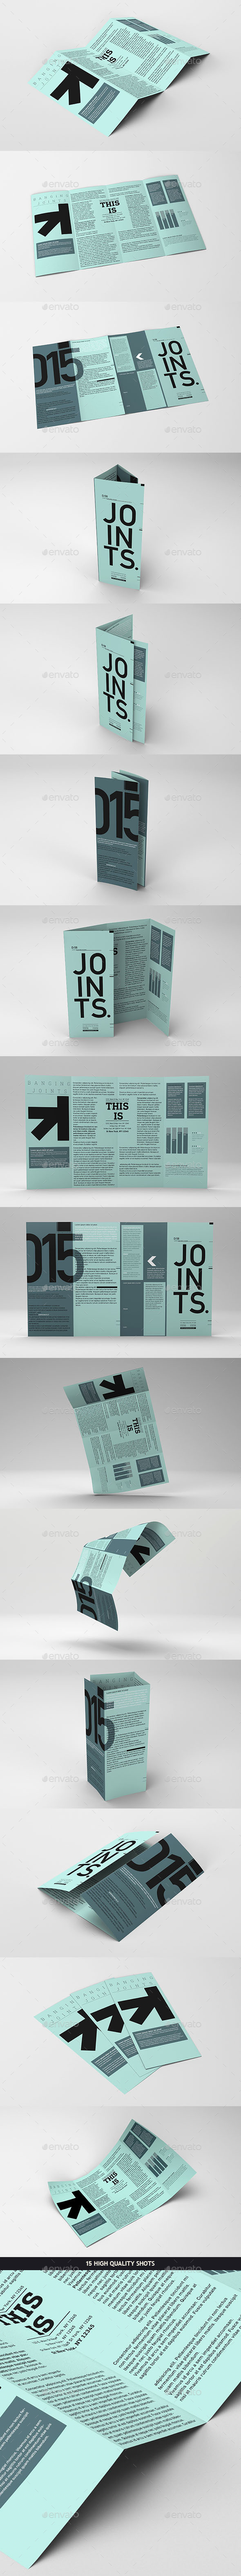 GraphicRiver Gate Fold Roll Brochure Mockup 10318693